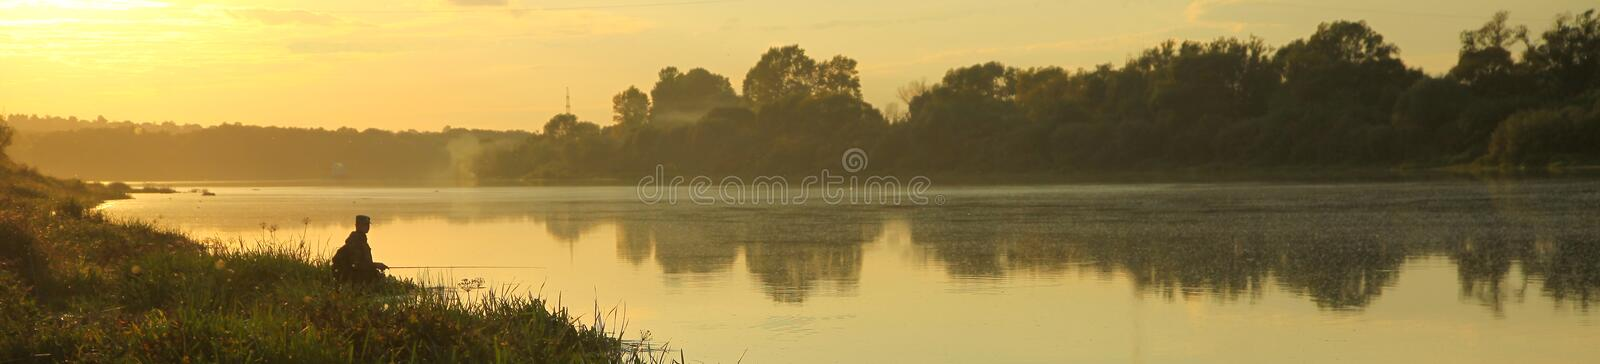 Fishing early in the morning. stock images